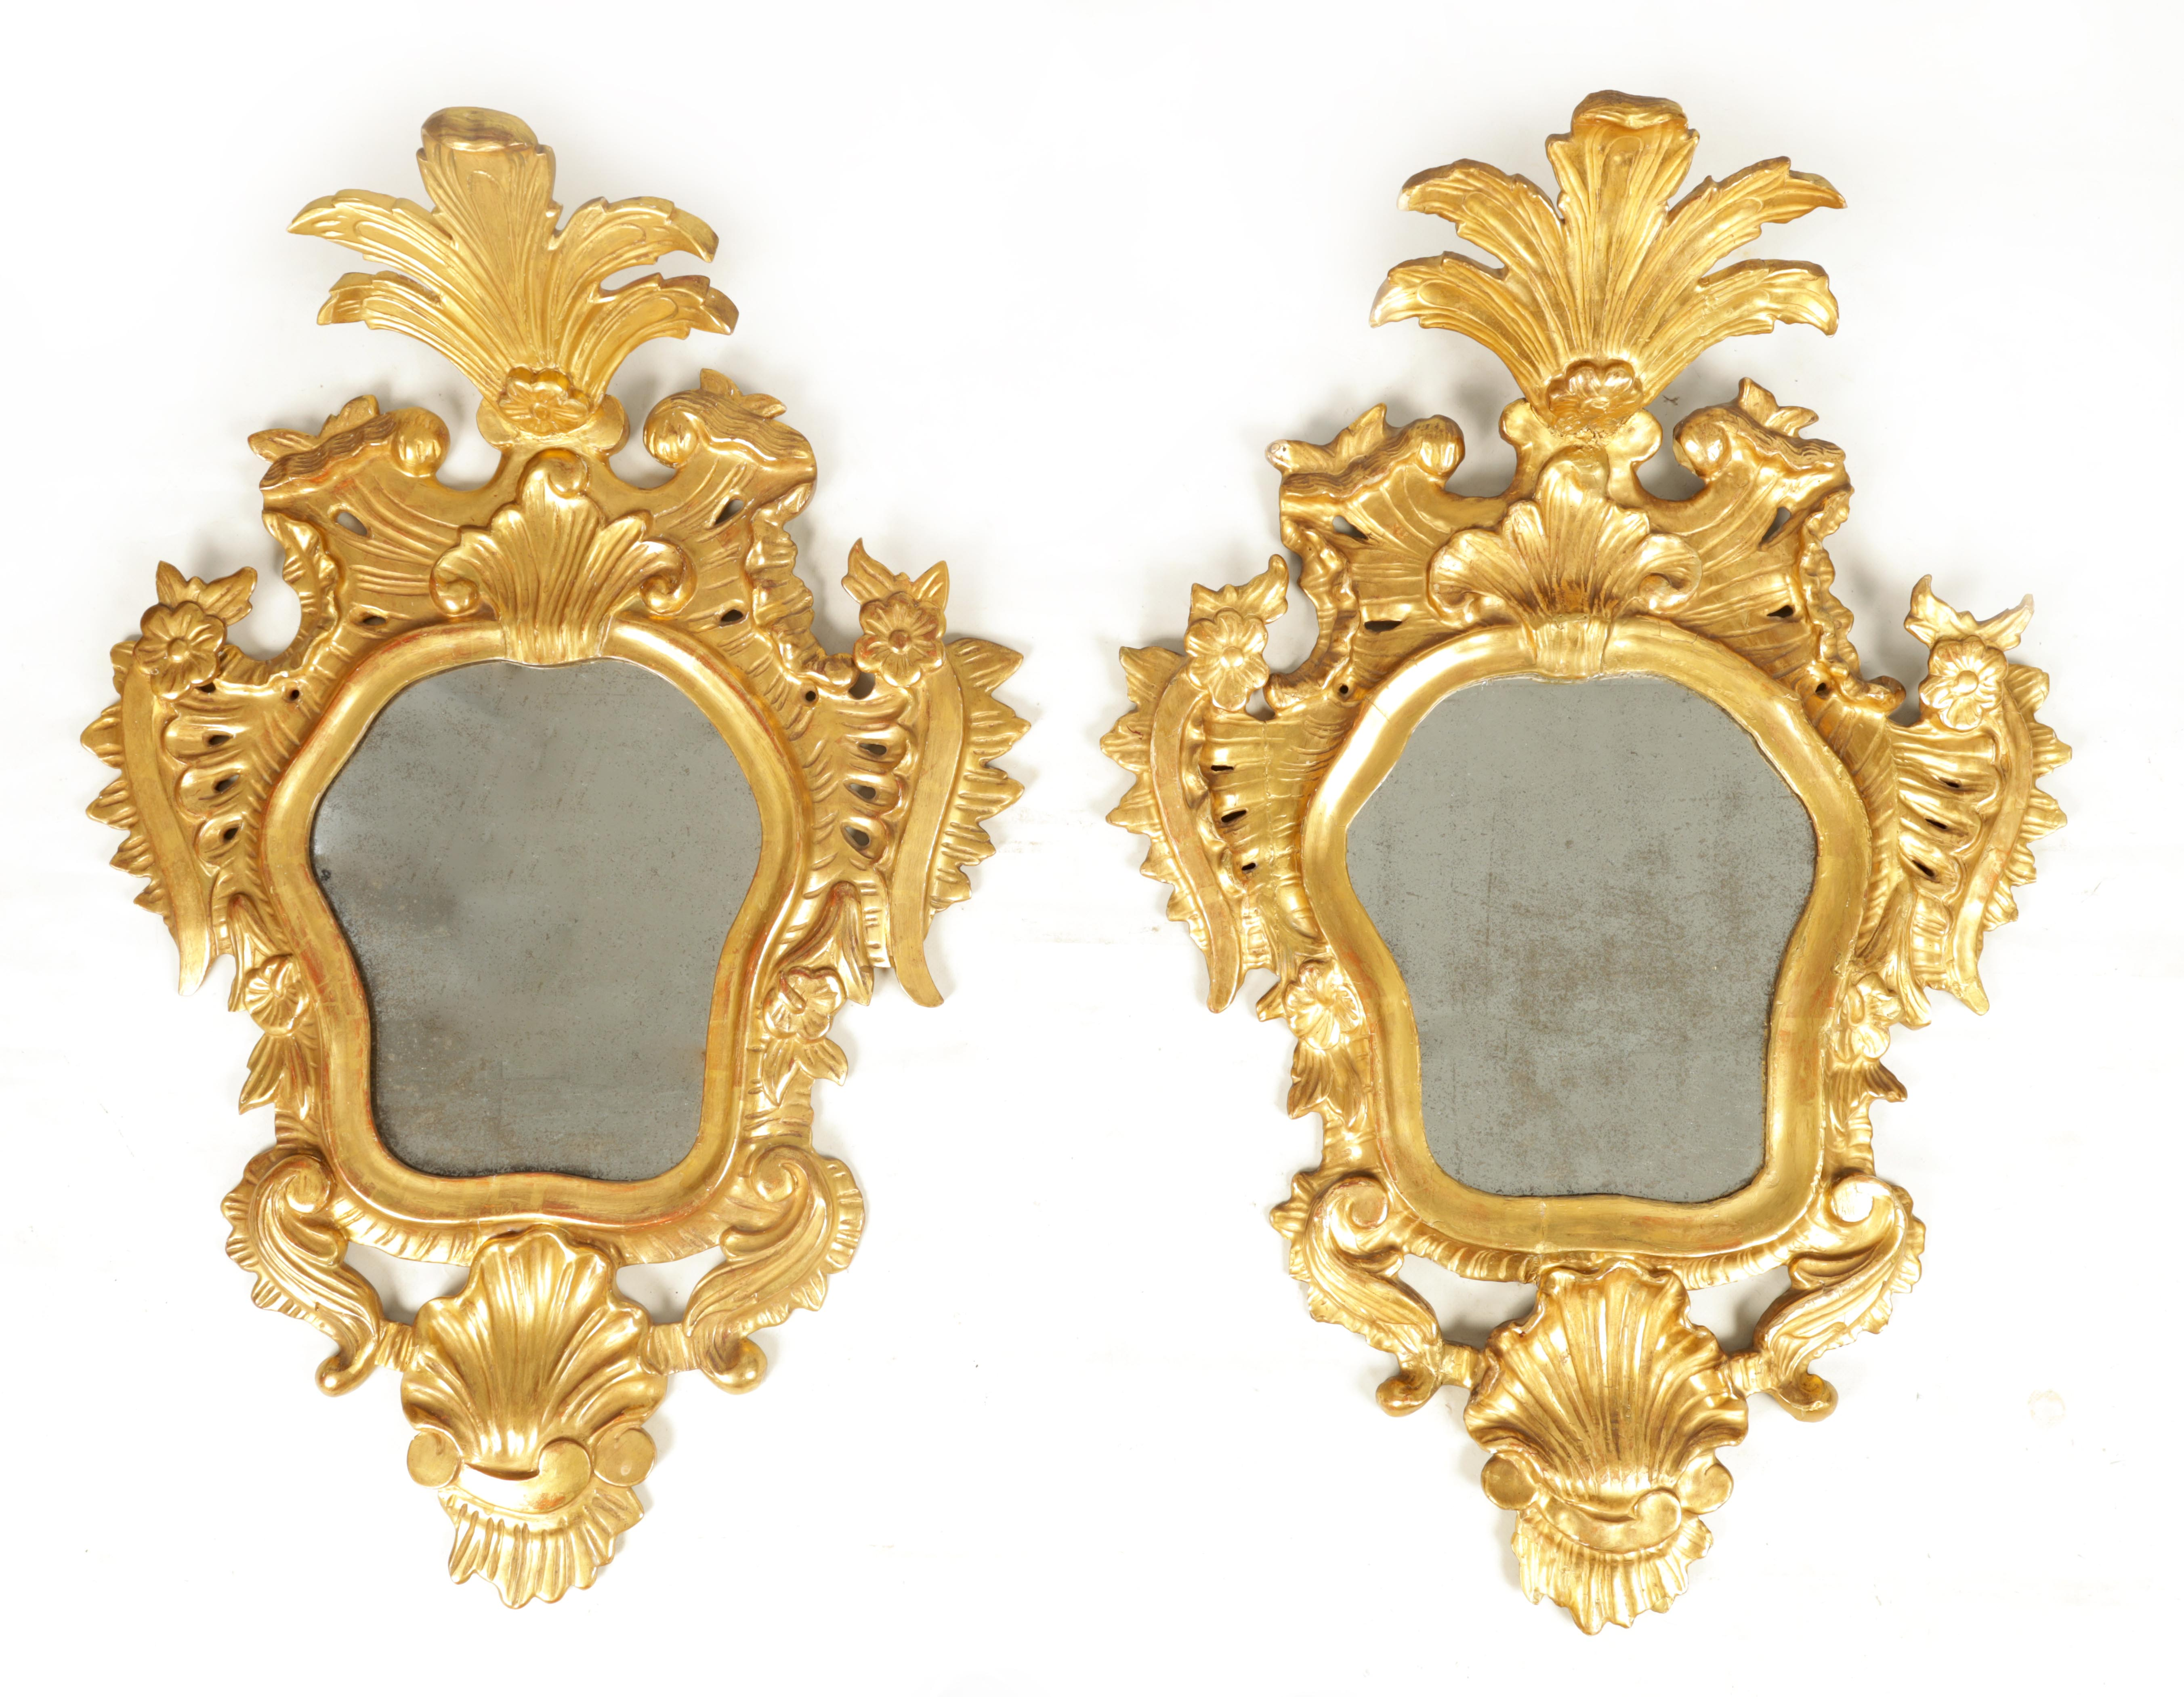 A PAIR OF 19TH CENTURY CARVED GILT WOOD ITALIAN FLORENTINE MIRRORS with leaf and shell carved frames